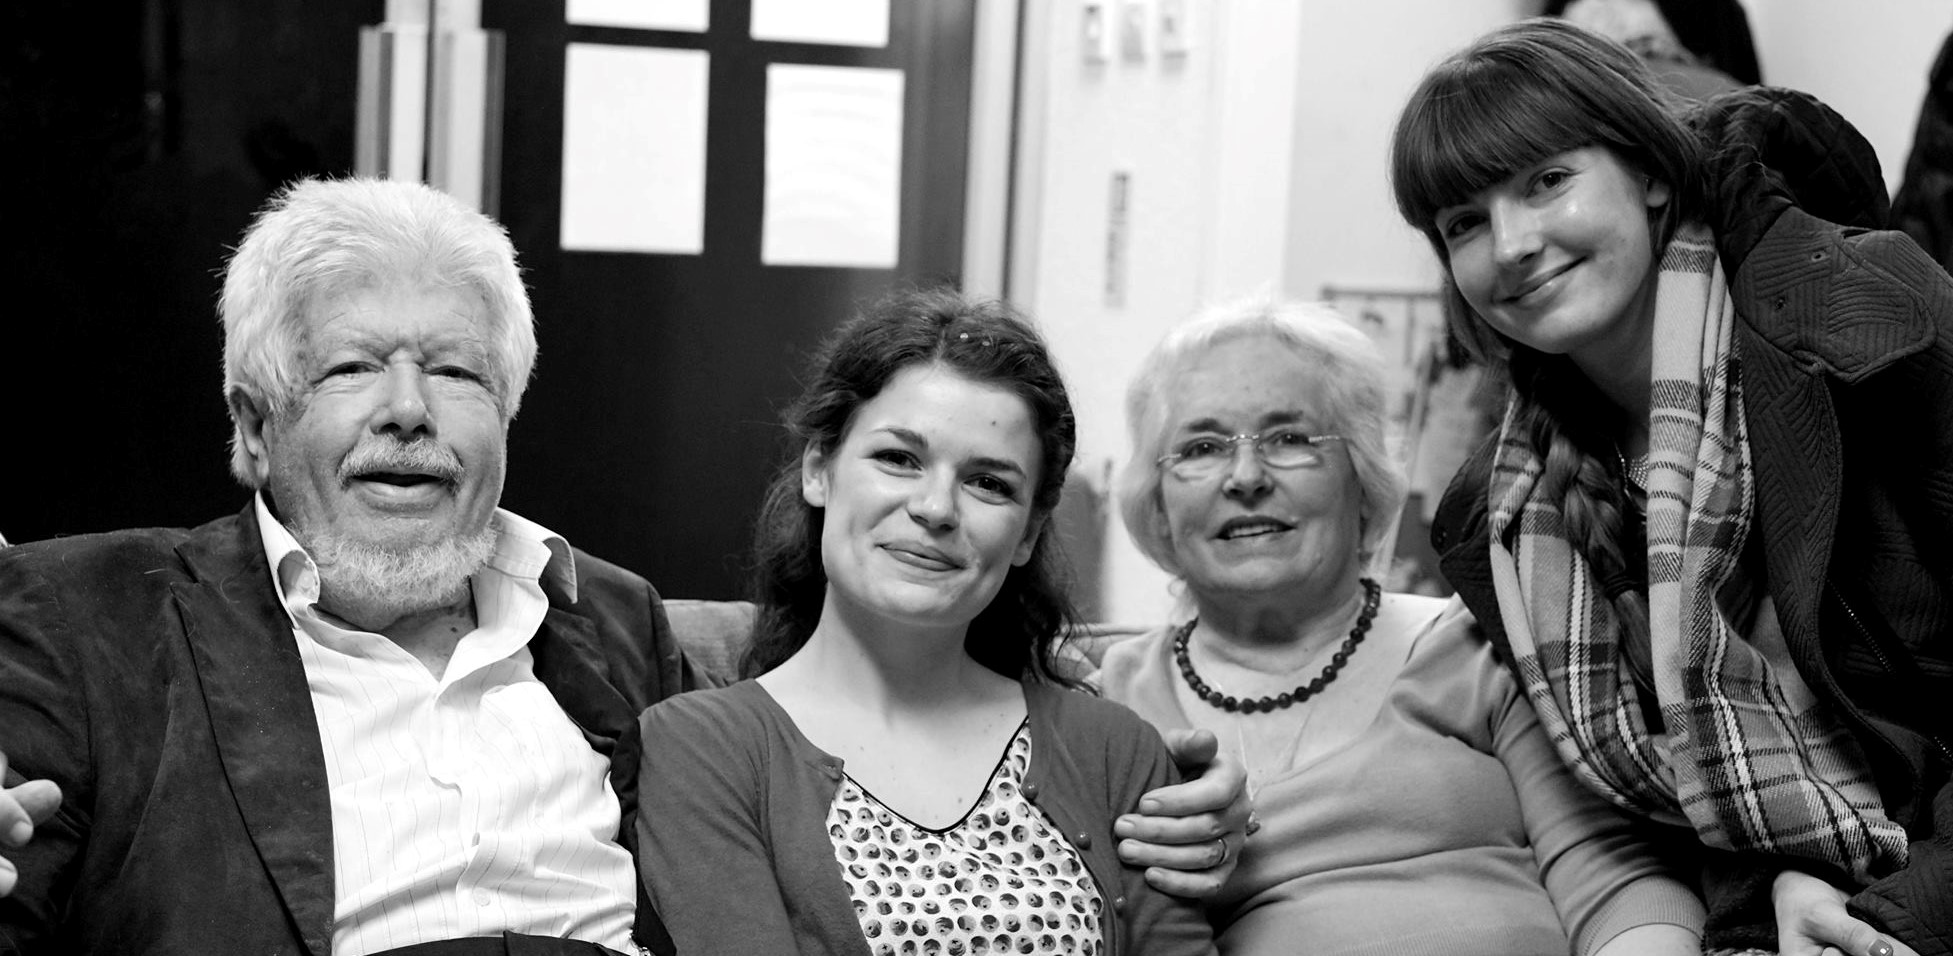 Roy Teed with (l to r) daughter Lucy, wife Jennifer and daughter Trudy, Colchester Buddhist Centre, 2015